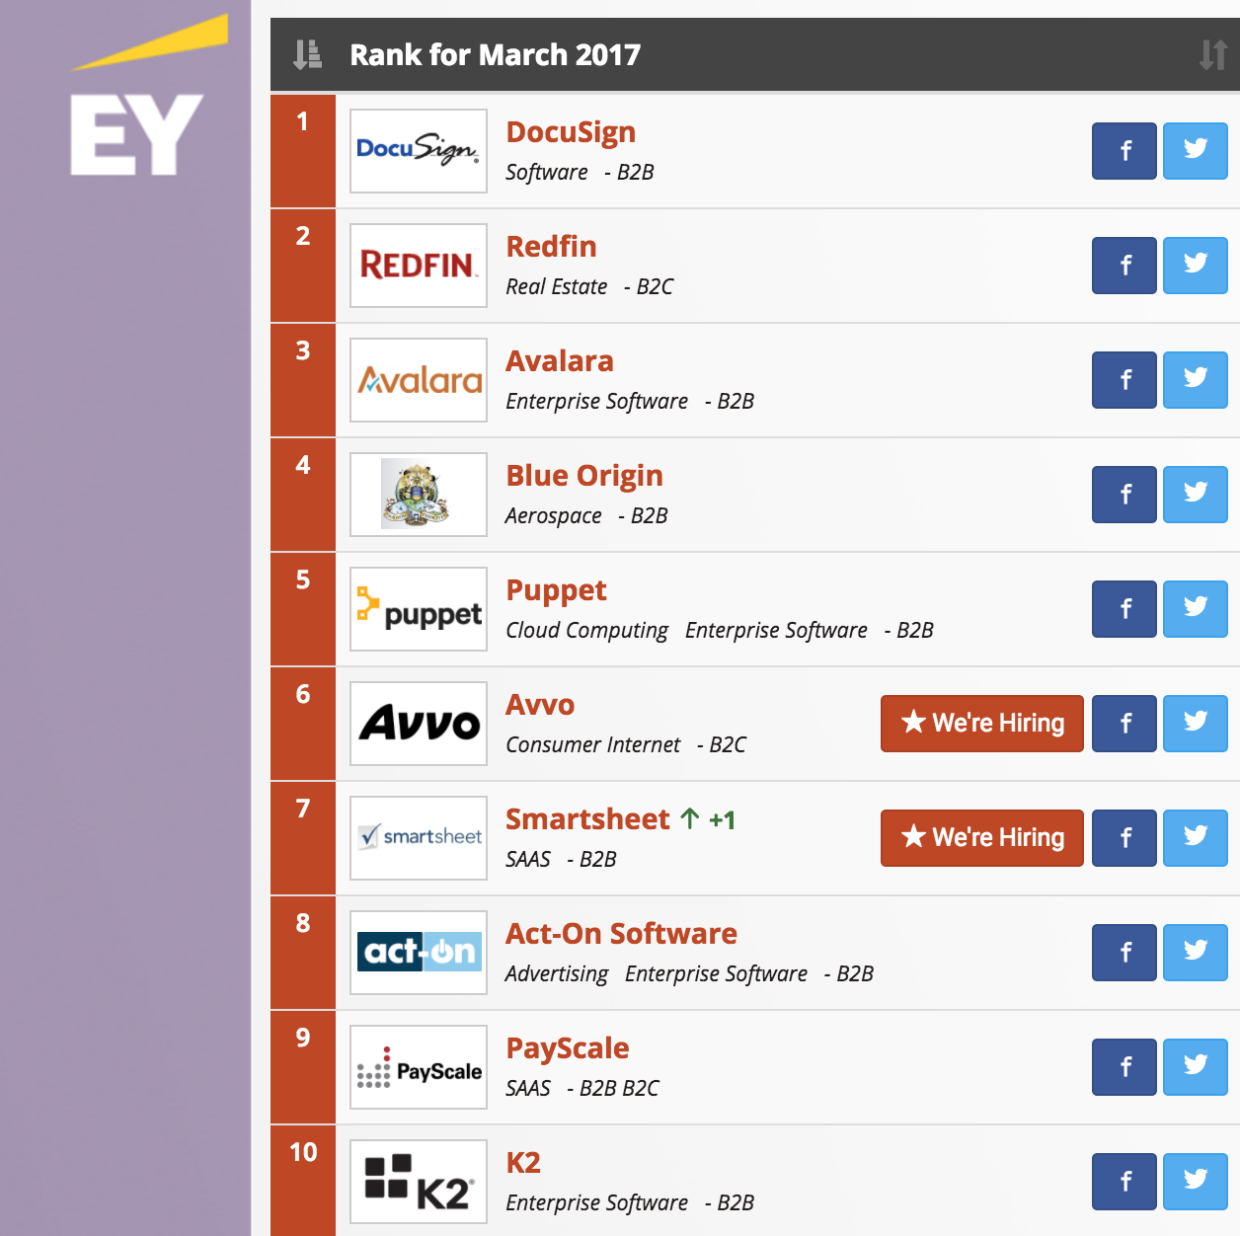 Redfin takes 1 spot in geekwire 200 topping docusign for first geekwire 200 march update startups spring up the list thanks to cash infusions biocorpaavc Image collections